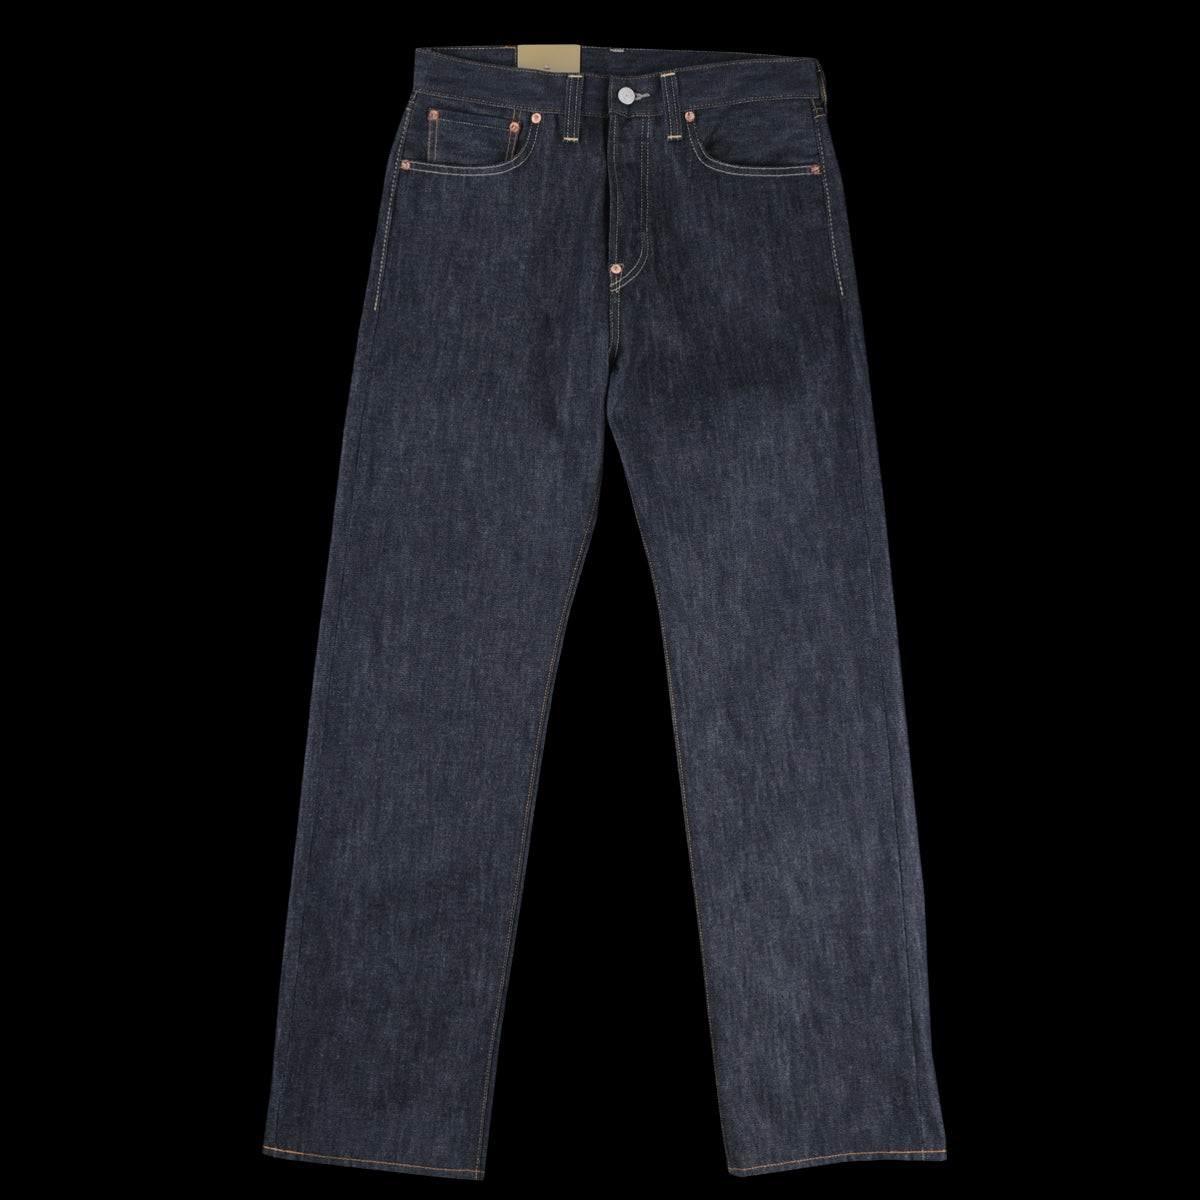 1000d60c Levi's Vintage Clothing - 1937 501 in Rigid - UNIONMADE